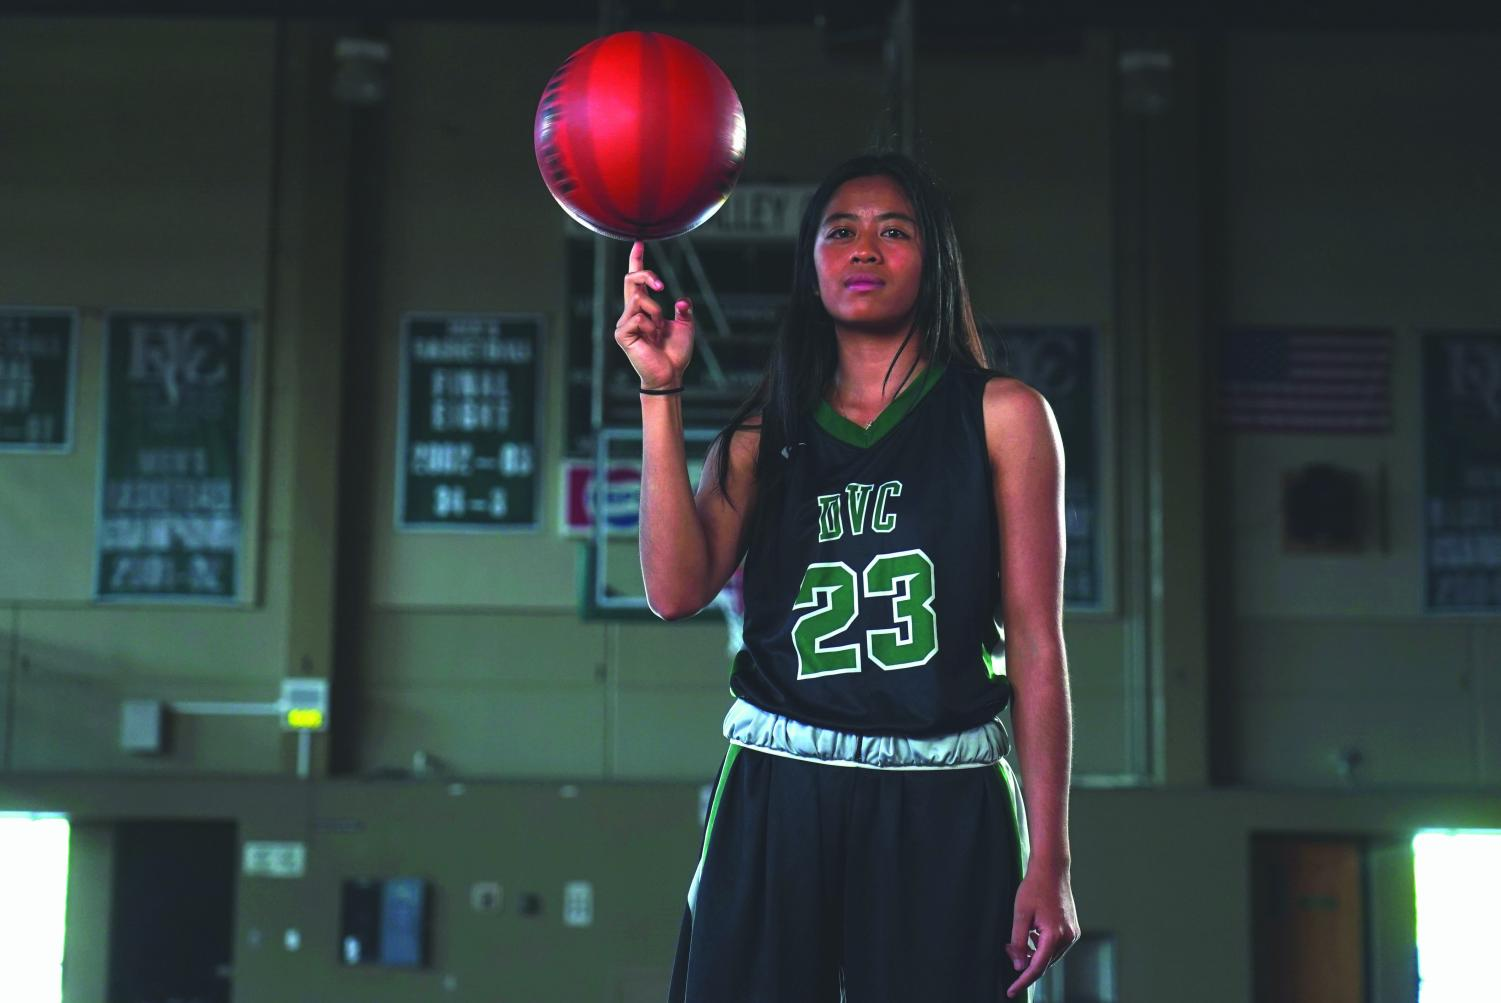 As a point-guard for the Vikings, Jasmine Kong had shown strong dedication on the court. However, in her personal life, she has had to persevere. (Ethan Anderson/The Inquirer).